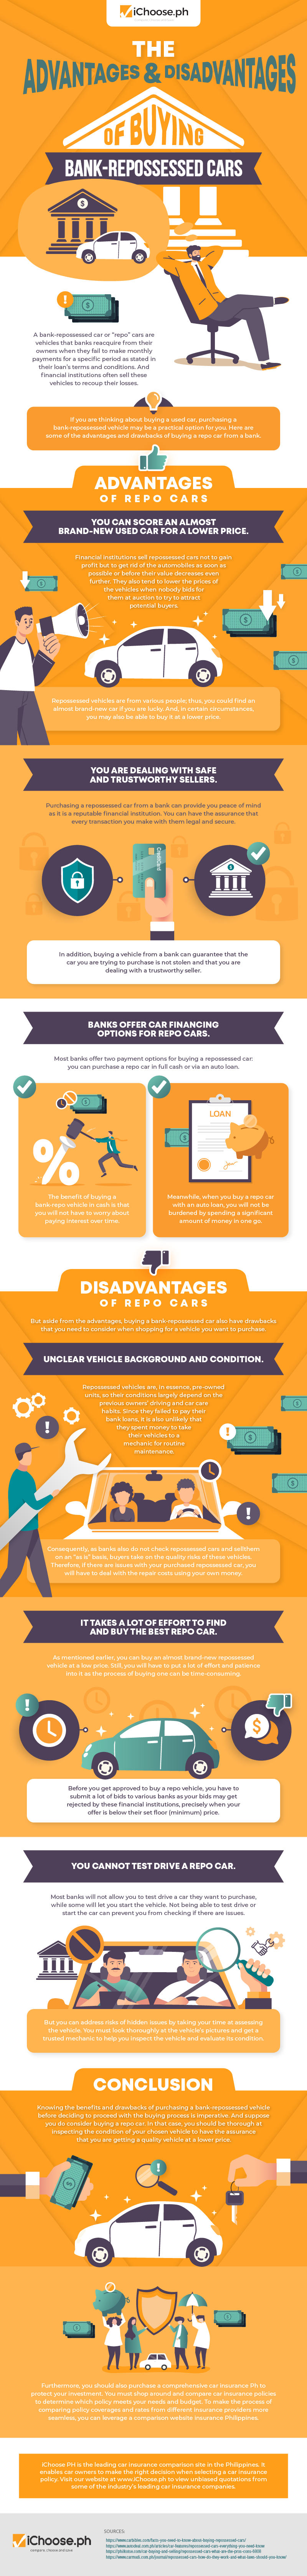 The-Advantages-and-Disadvantages-of-Buying-Bank_Repossessed-Cars-Infographic